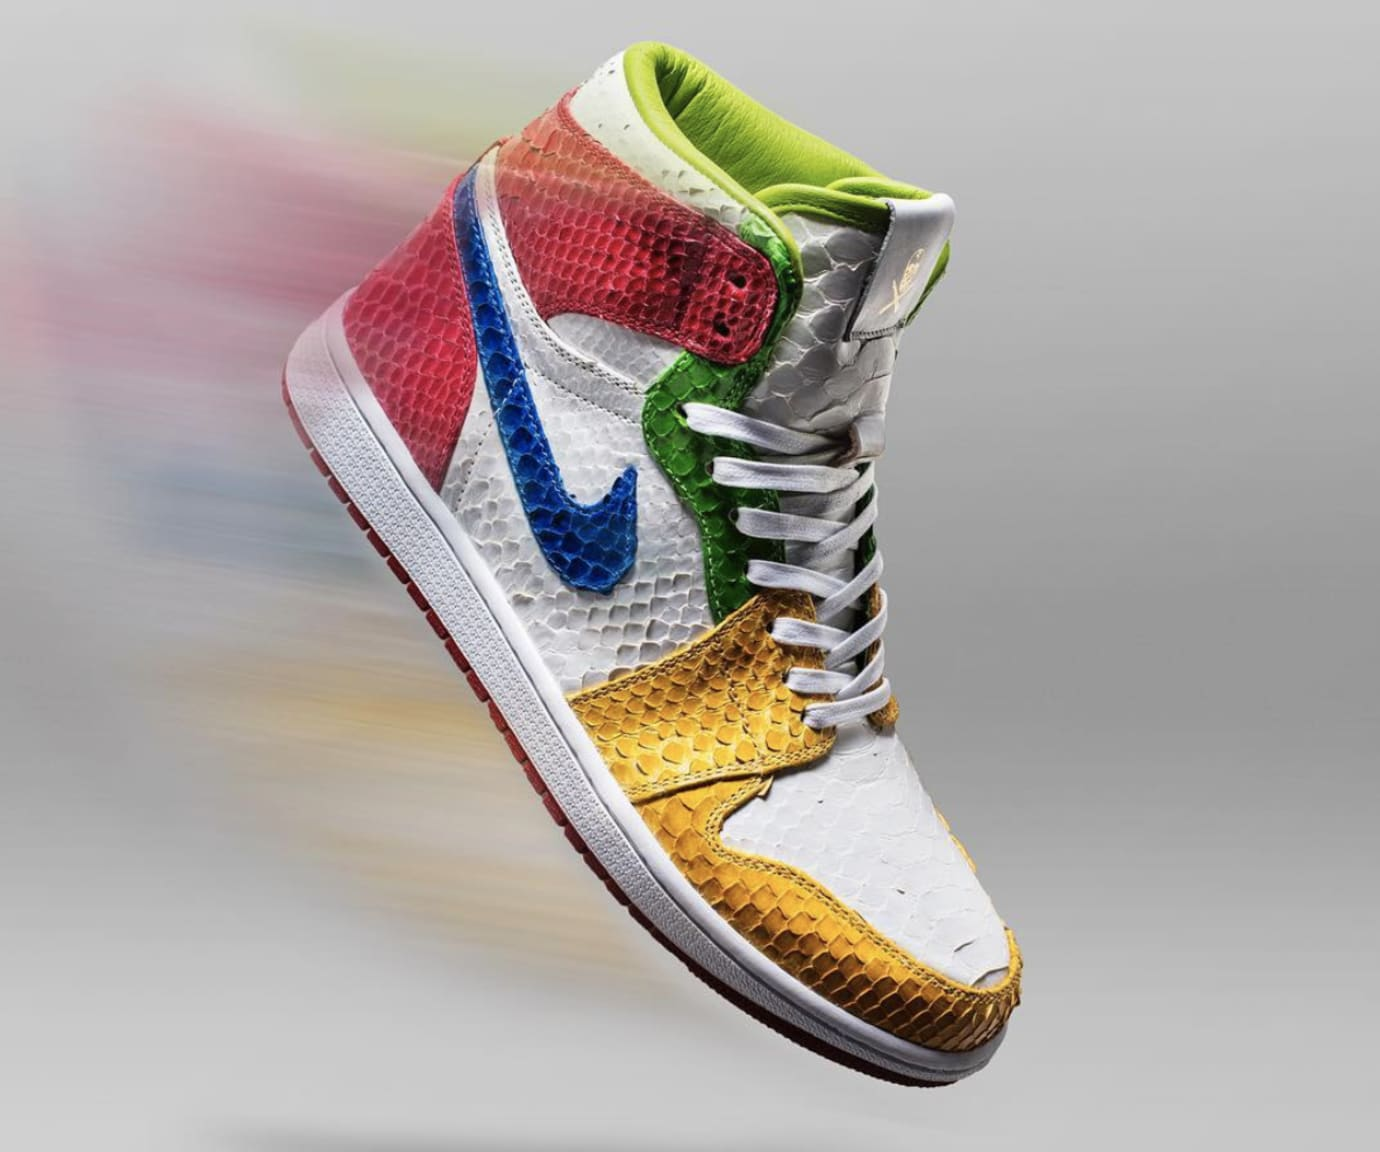 e4b89dab962b The Shoe Surgeon x Ebay x Air Jordan 1 ComplexCon Auction